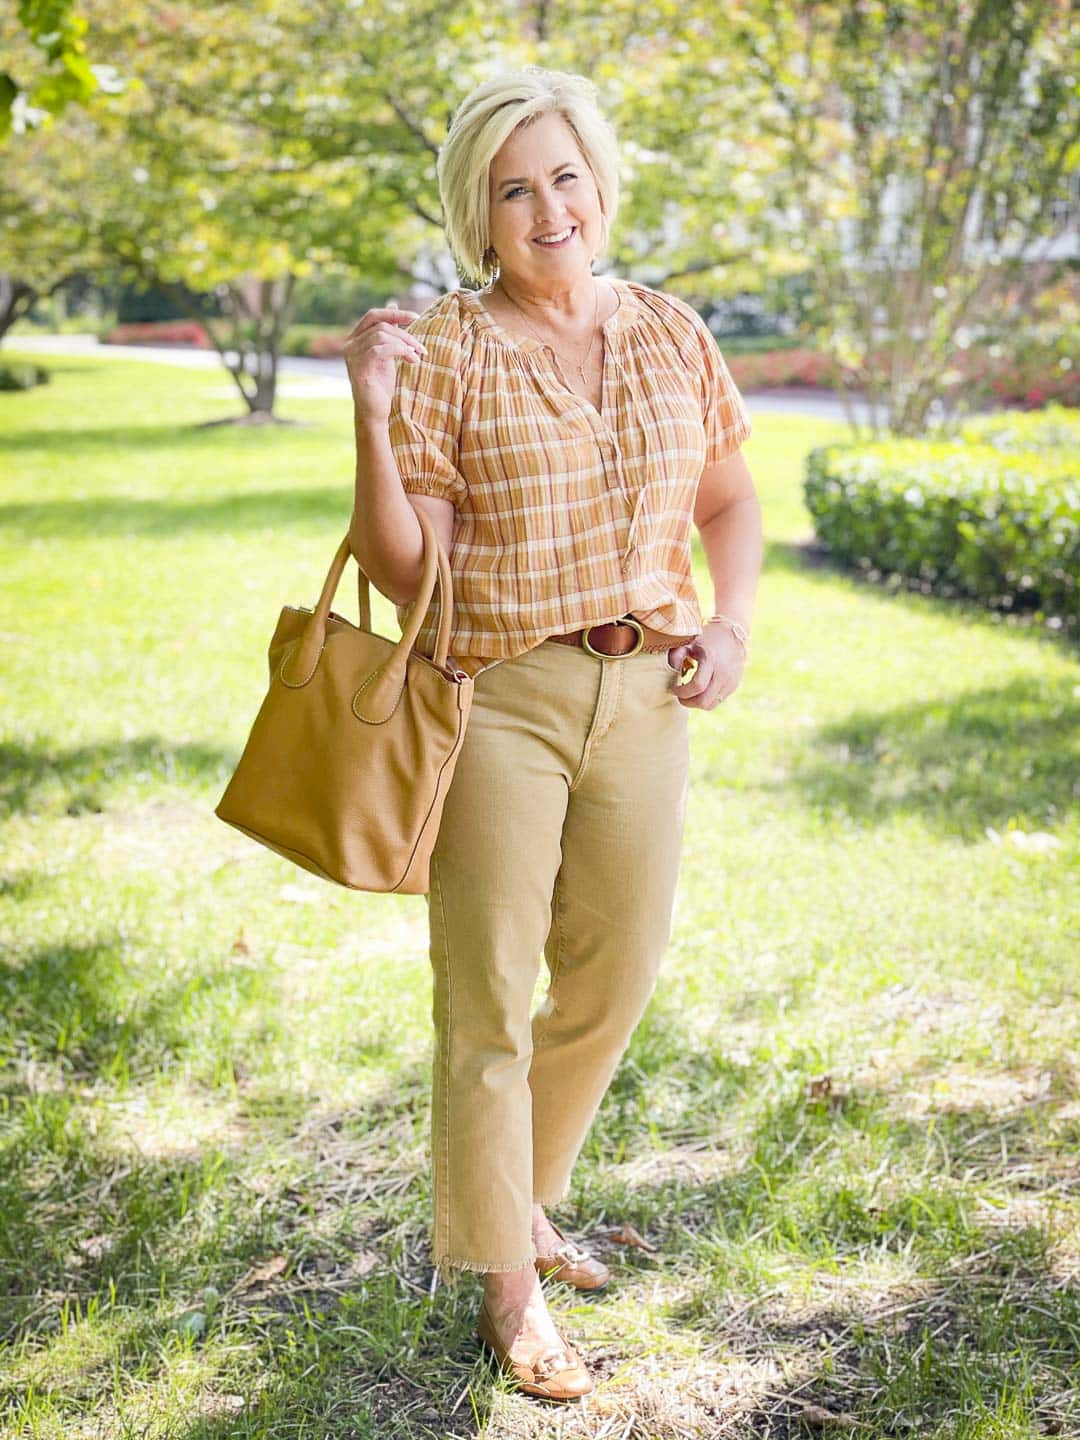 Over 40 Fashion Blogger, Tania Stephens, looks casual in her fall festive plaid top, cropped jeans, and flats